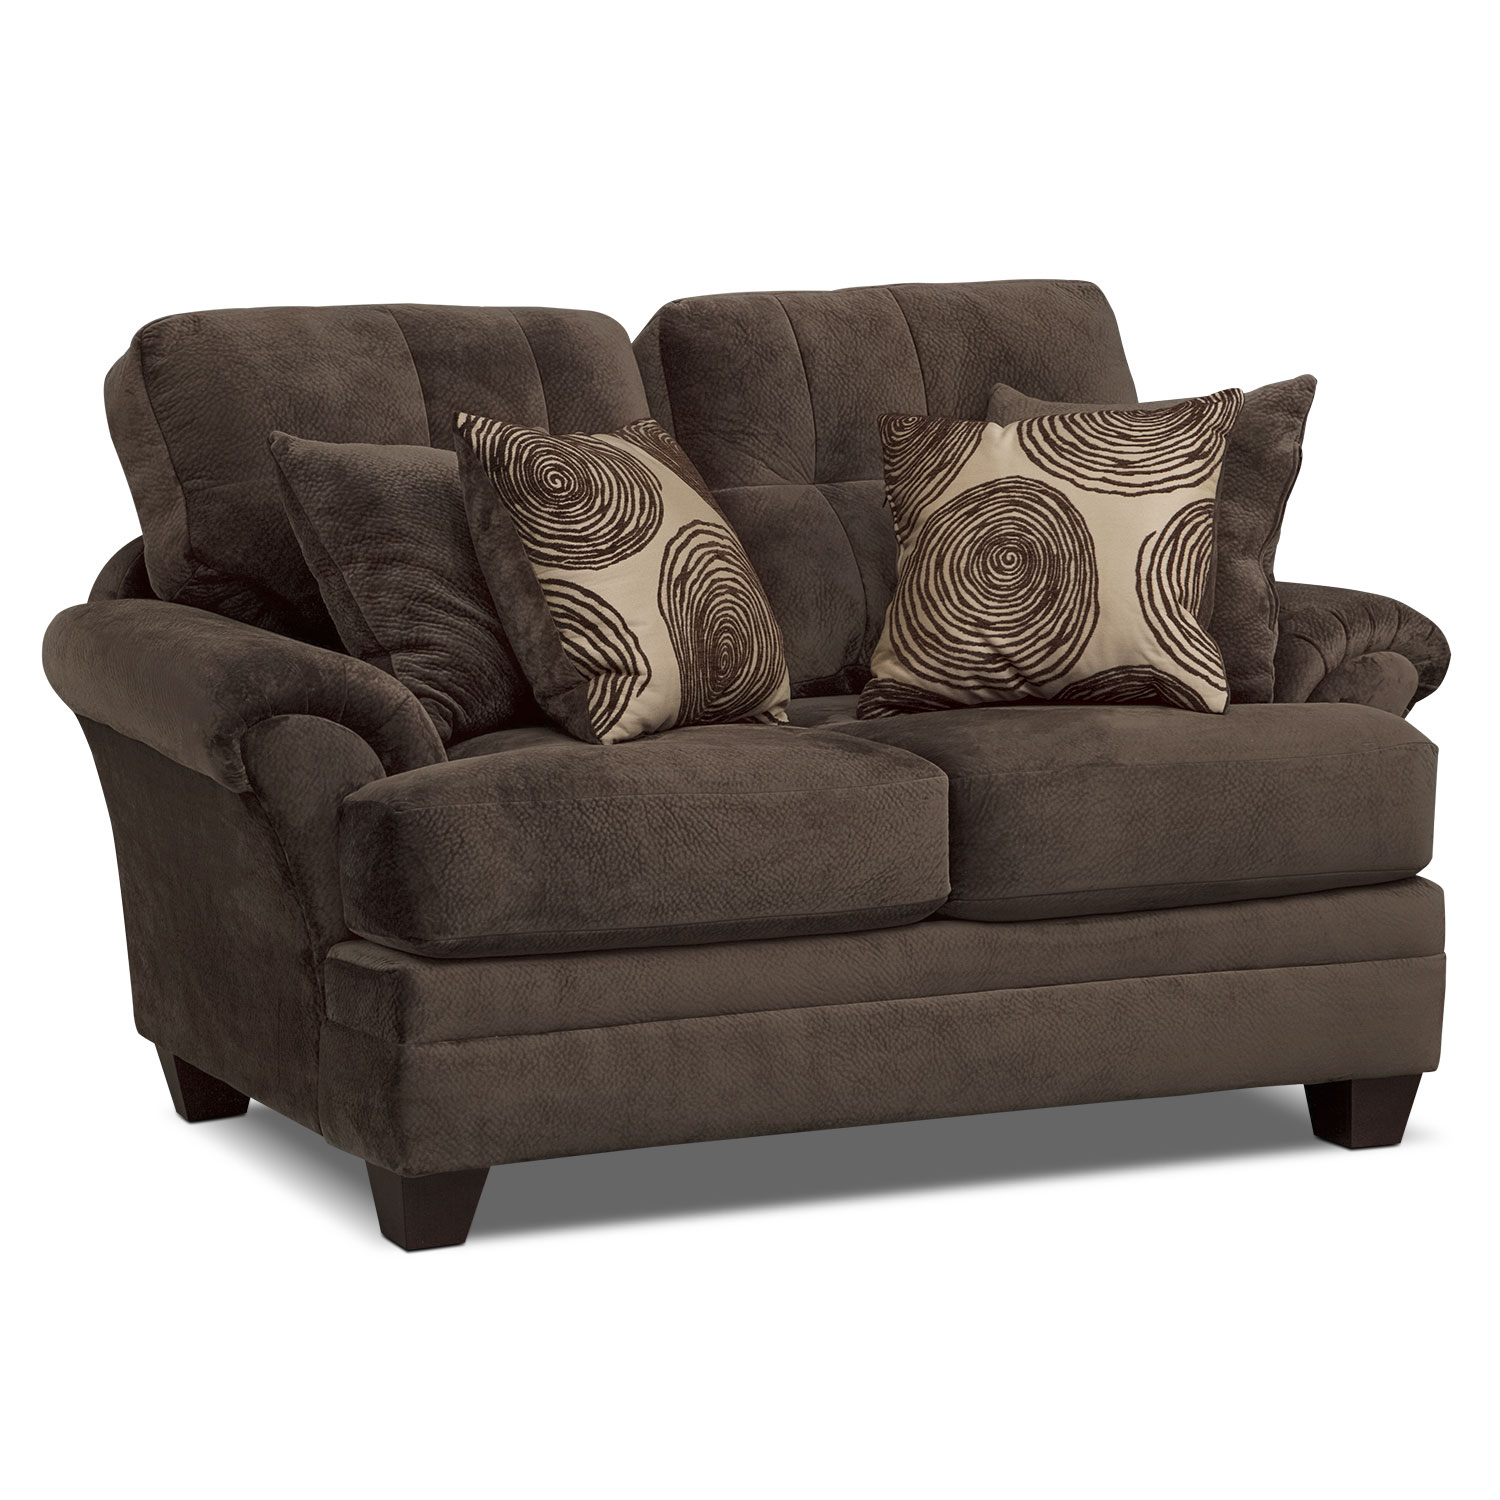 Cordelle Sofa Loveseat and Cocktail Ottoman Set Chocolate